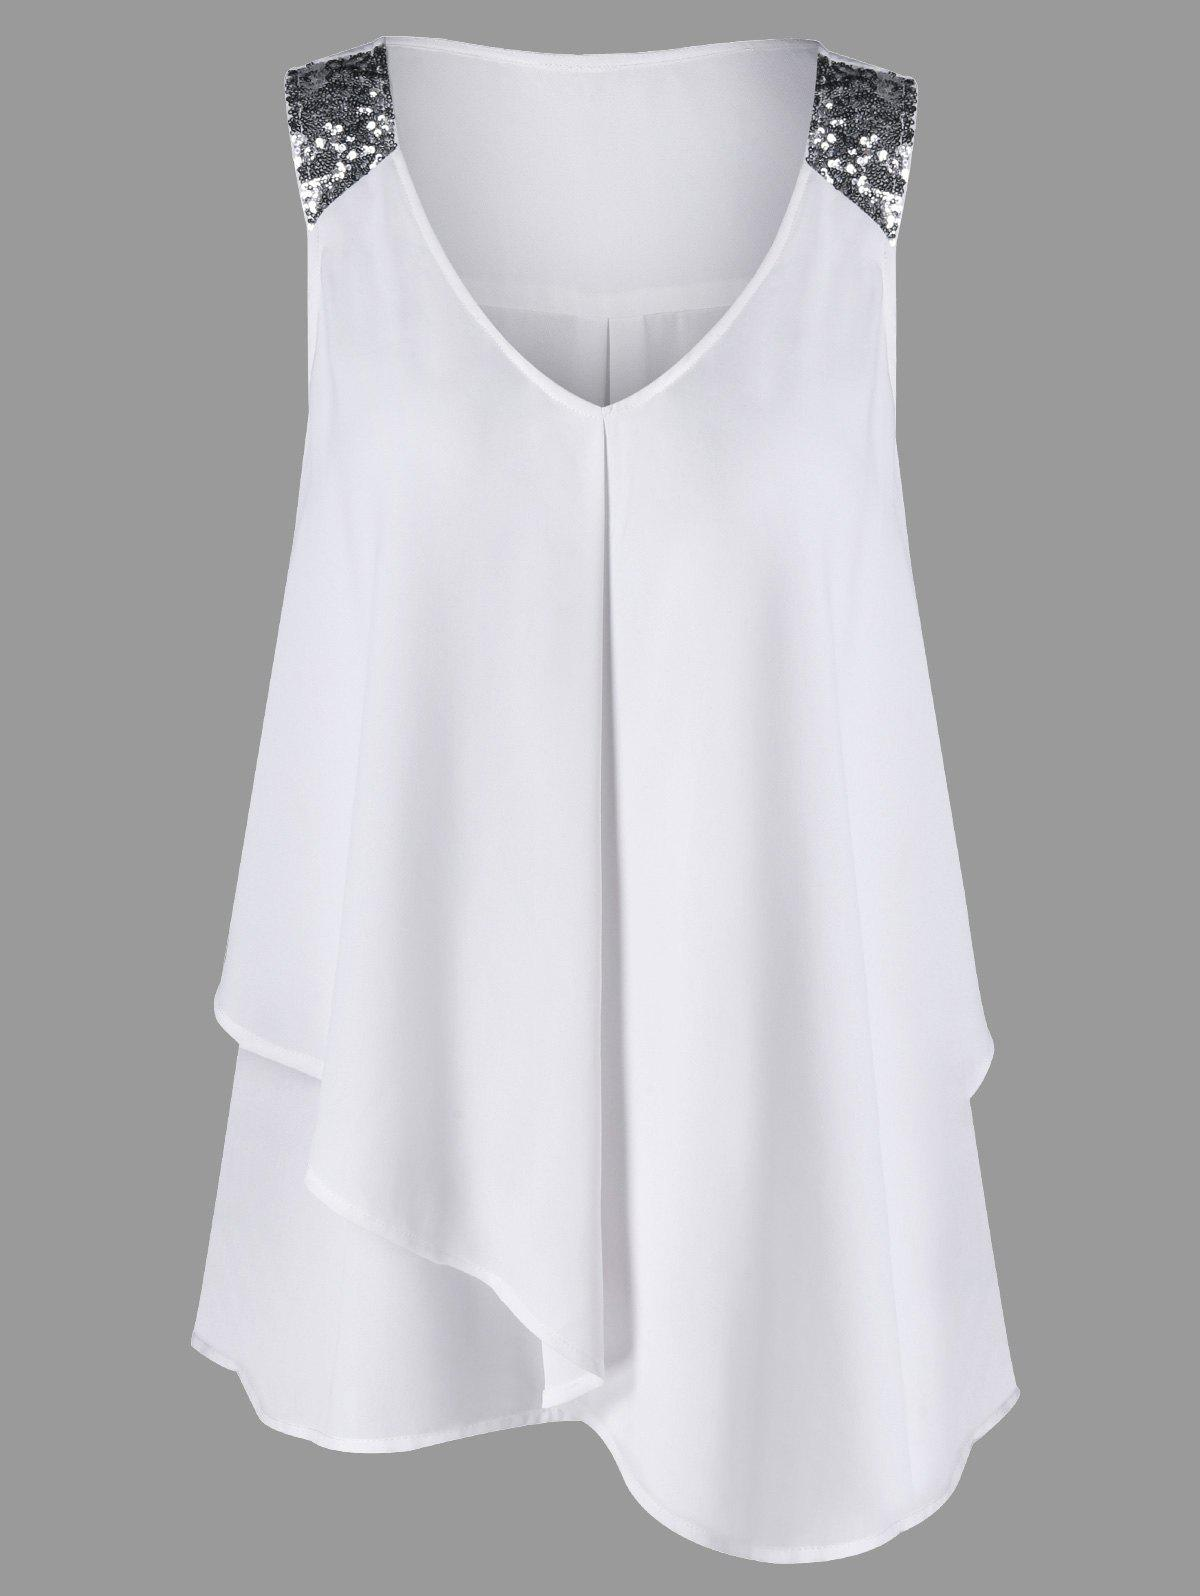 Plus Size Sequined Sleeveless Shoulder Overlap BlouseWOMEN<br><br>Size: 4XL; Color: WHITE; Material: Polyester; Shirt Length: Long; Sleeve Length: Sleeveless; Collar: V-Neck; Style: Fashion; Season: Summer; Pattern Type: Others; Weight: 0.2200kg; Package Contents: 1 x Blouse;